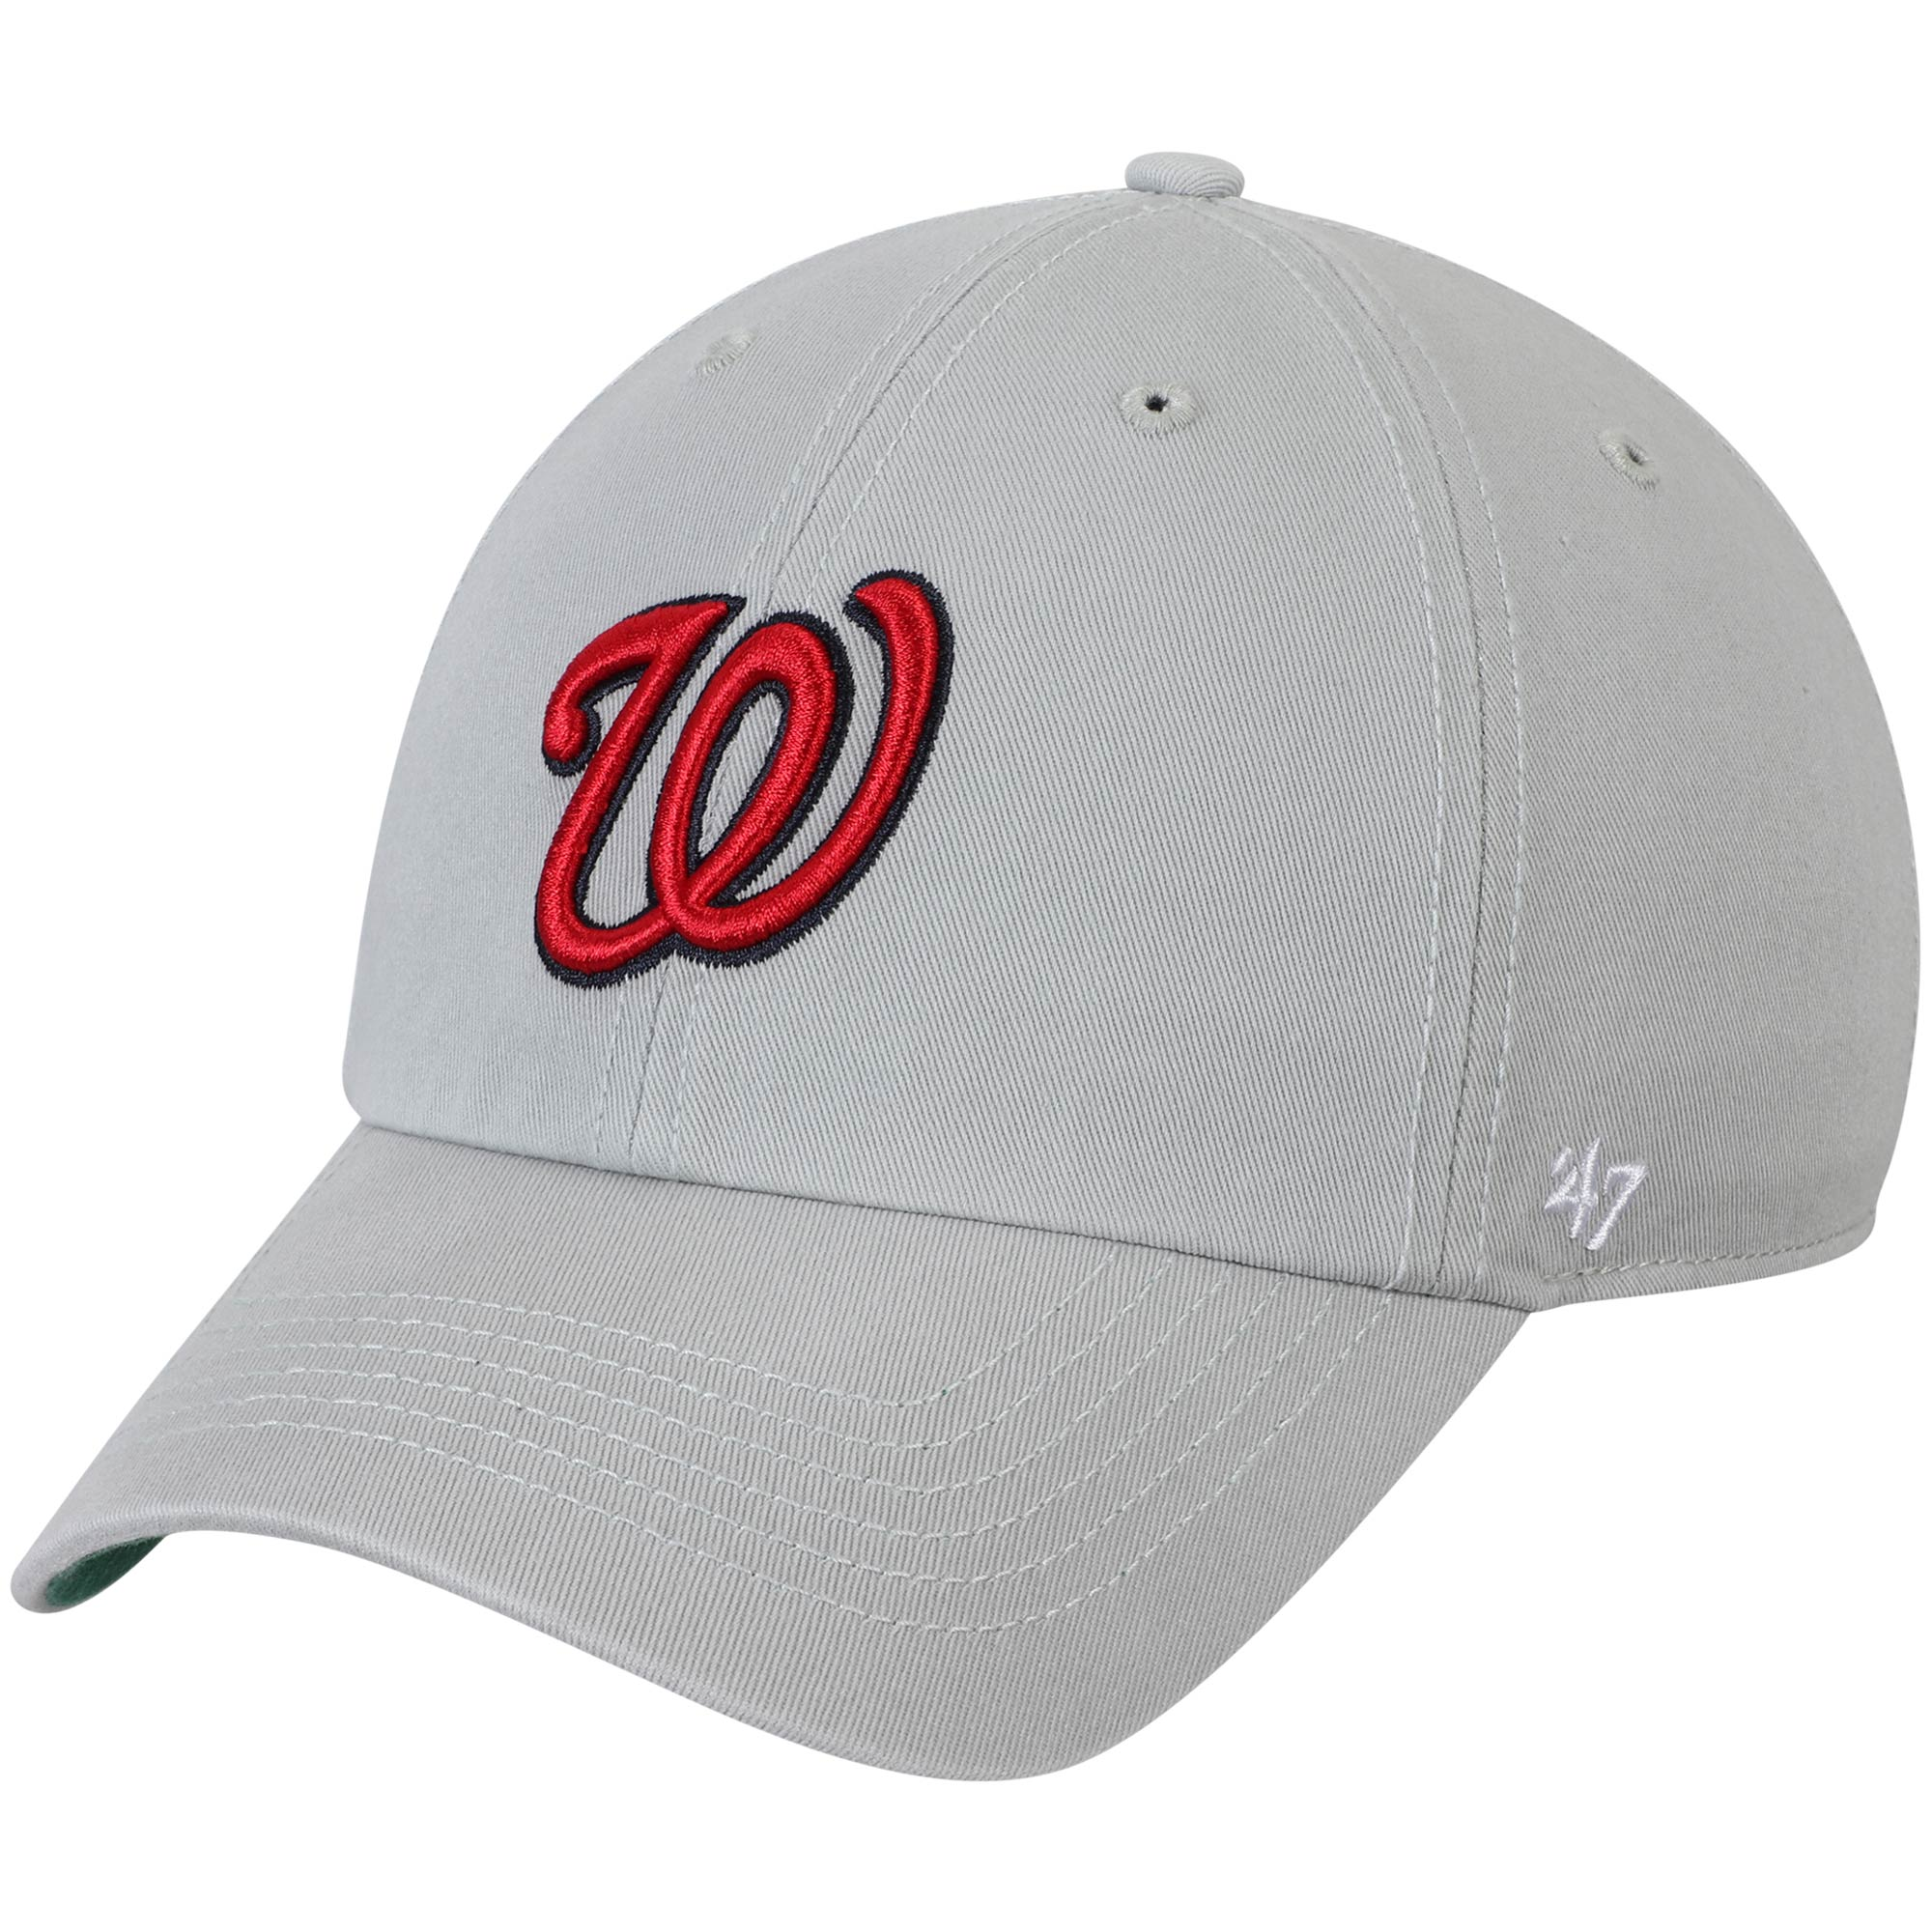 Washington Nationals '47 Primary Logo Franchise Fitted Hat - Gray